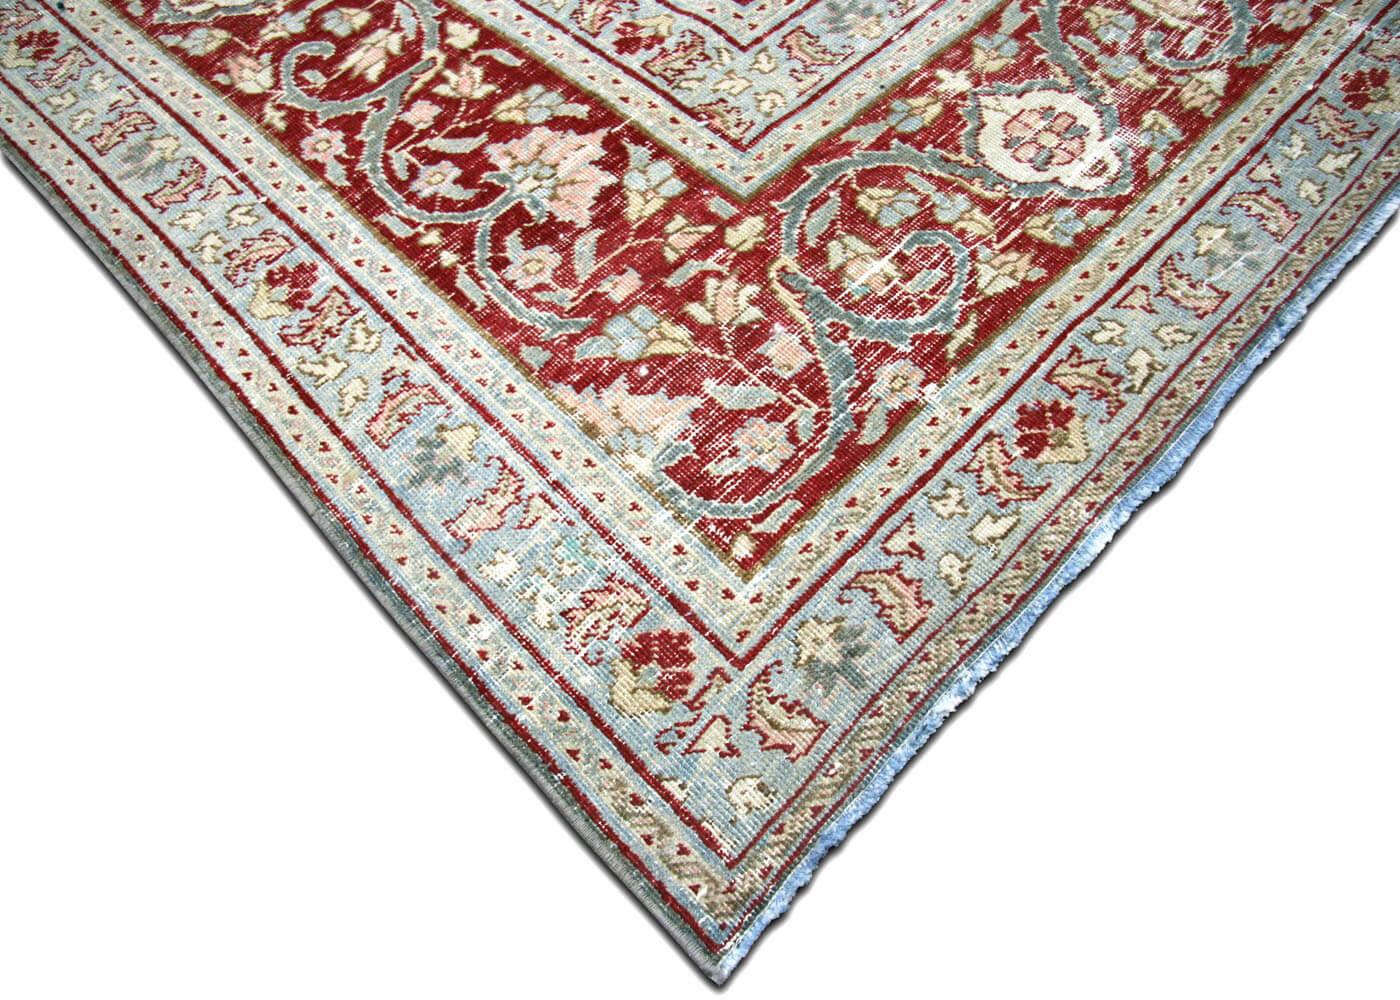 Semi Antique Persian Tabriz Carpet - 10' x 14'9""